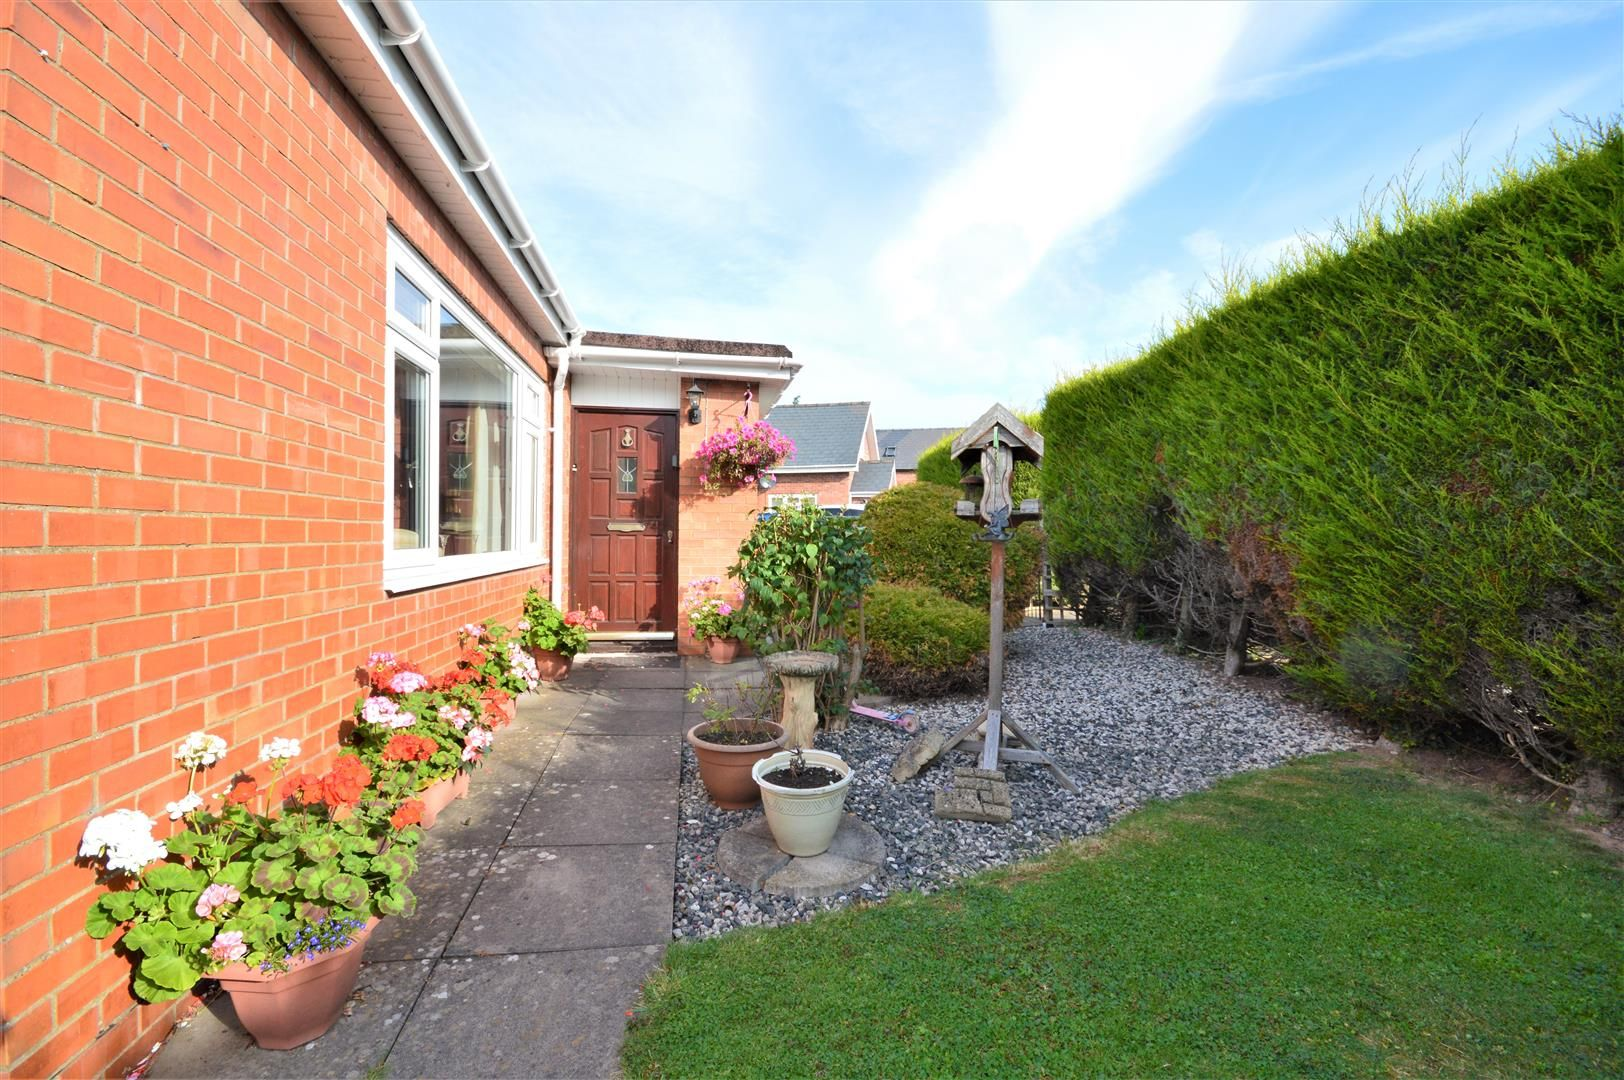 4 bed detached-bungalow for sale in Marden  - Property Image 14